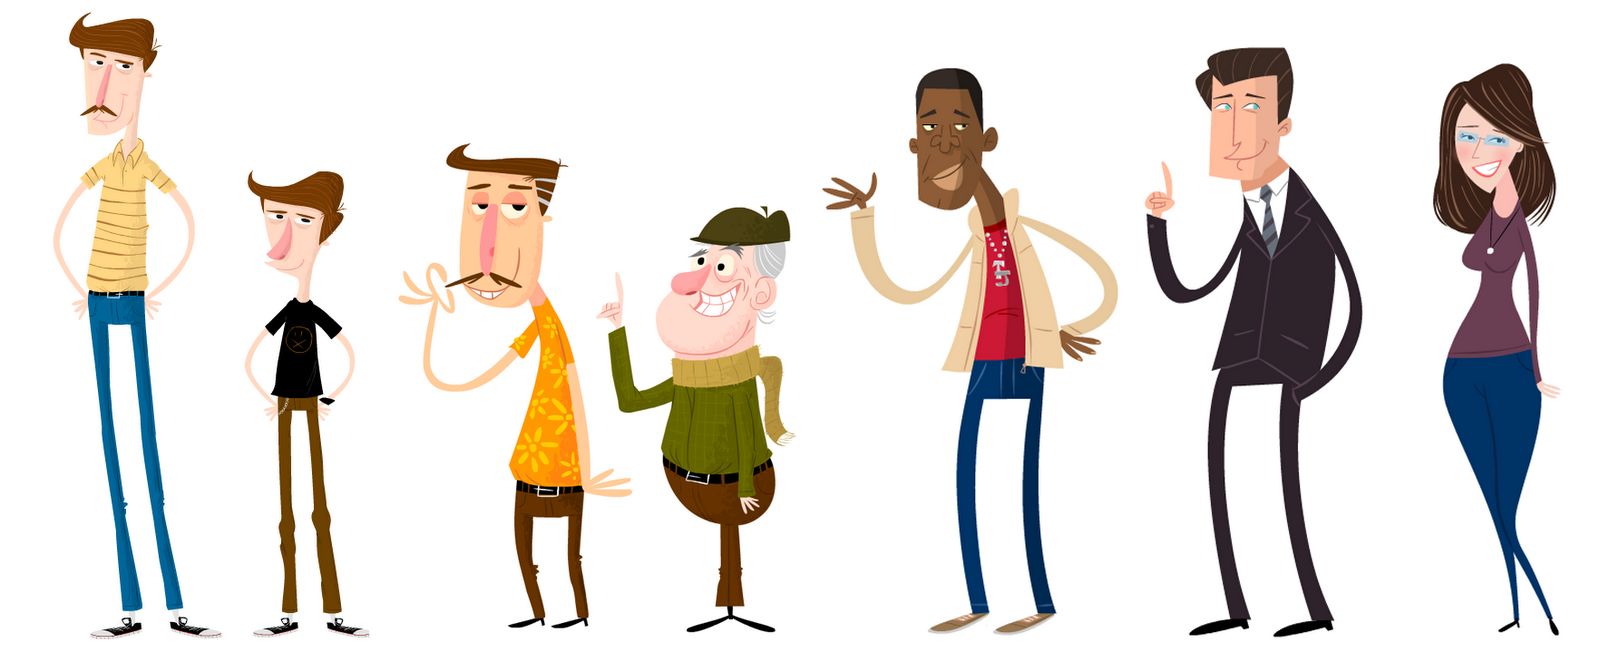 fun characters | Simple character, Vector character design, Character design